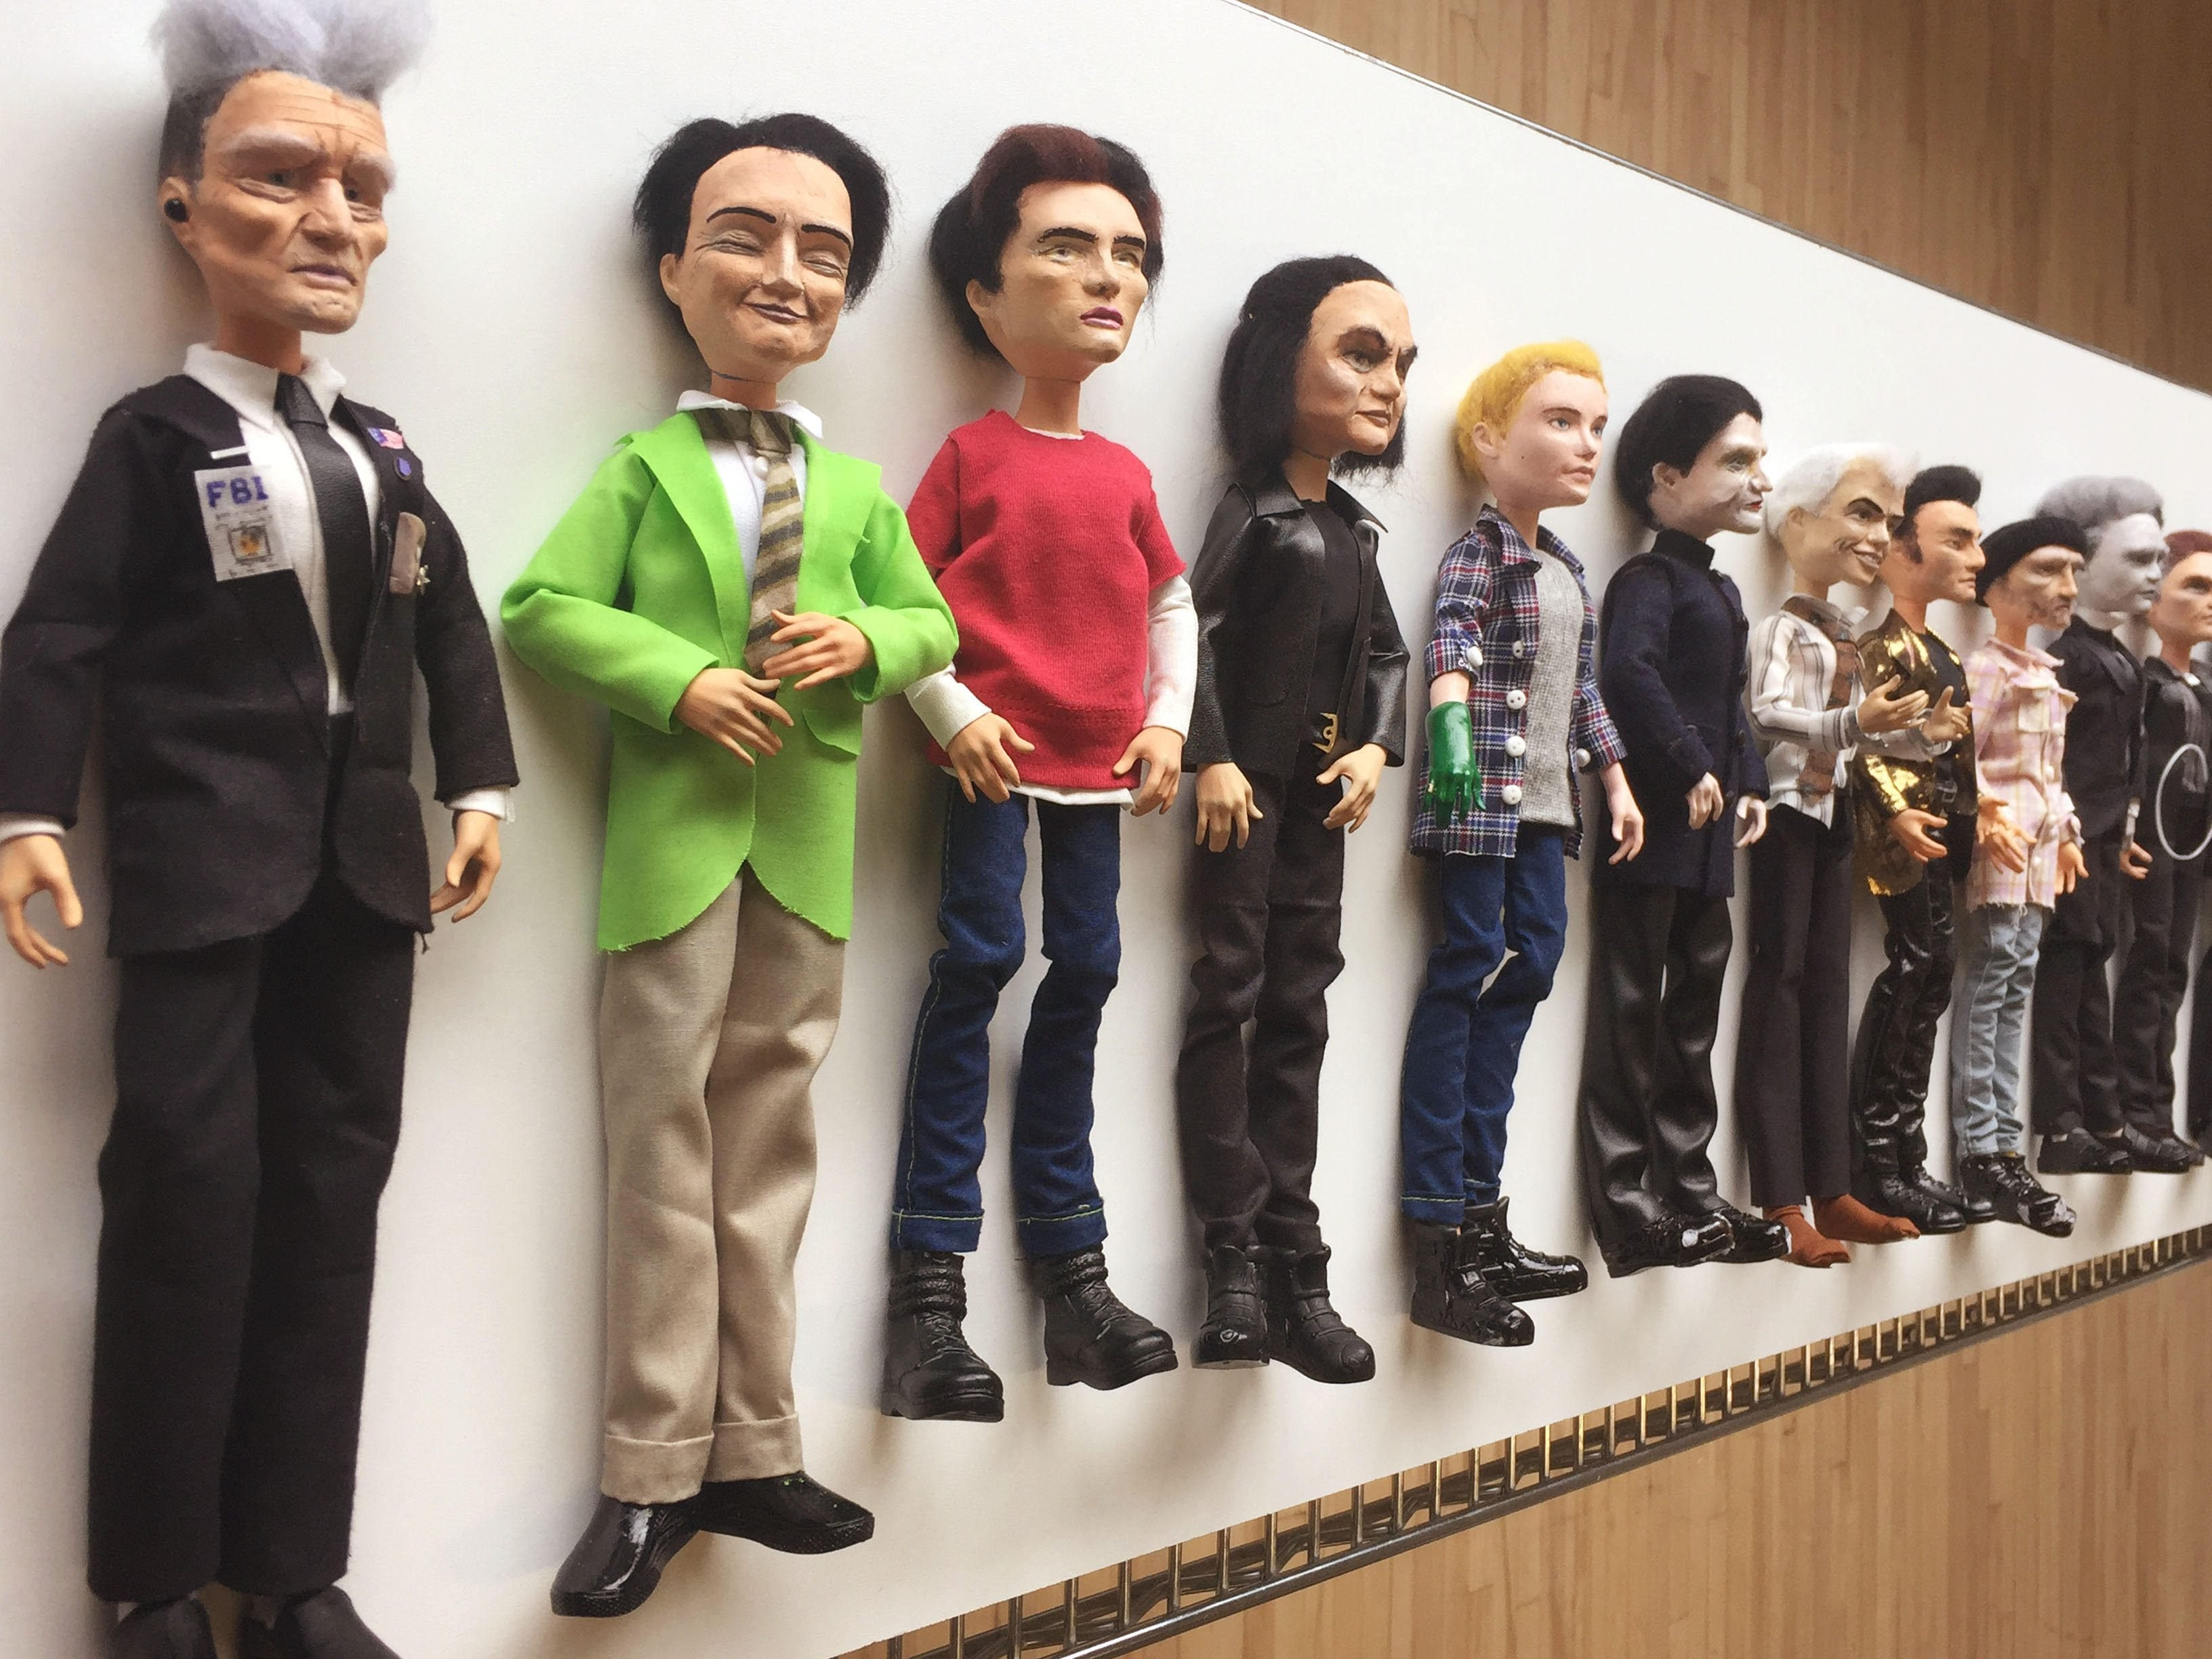 Men of Lynch dolls lined up against a wall